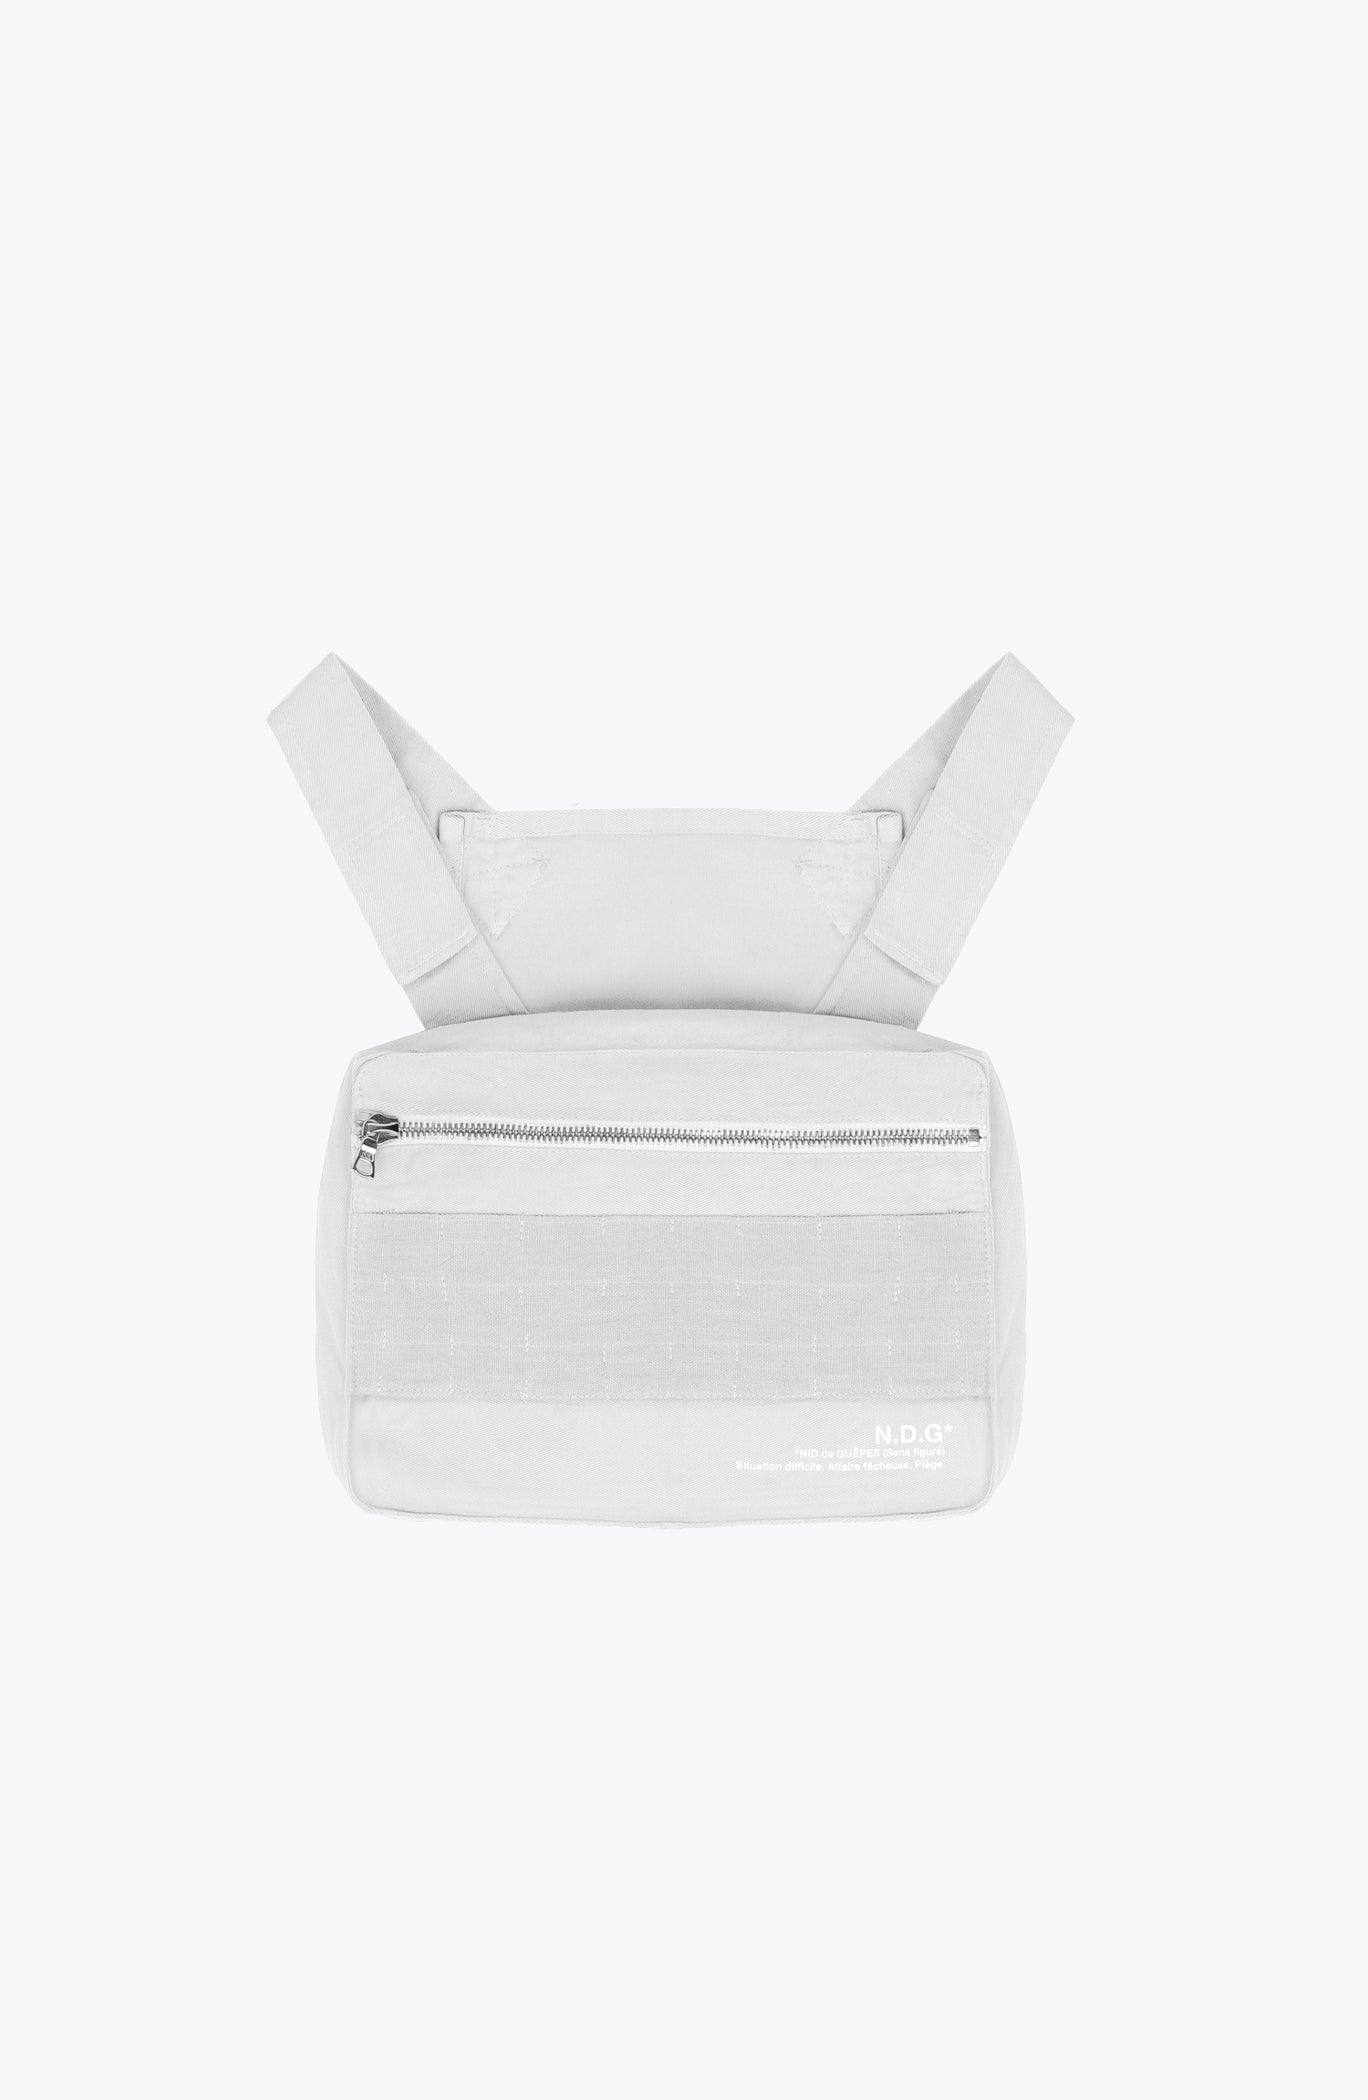 escape chest pack v2 - white